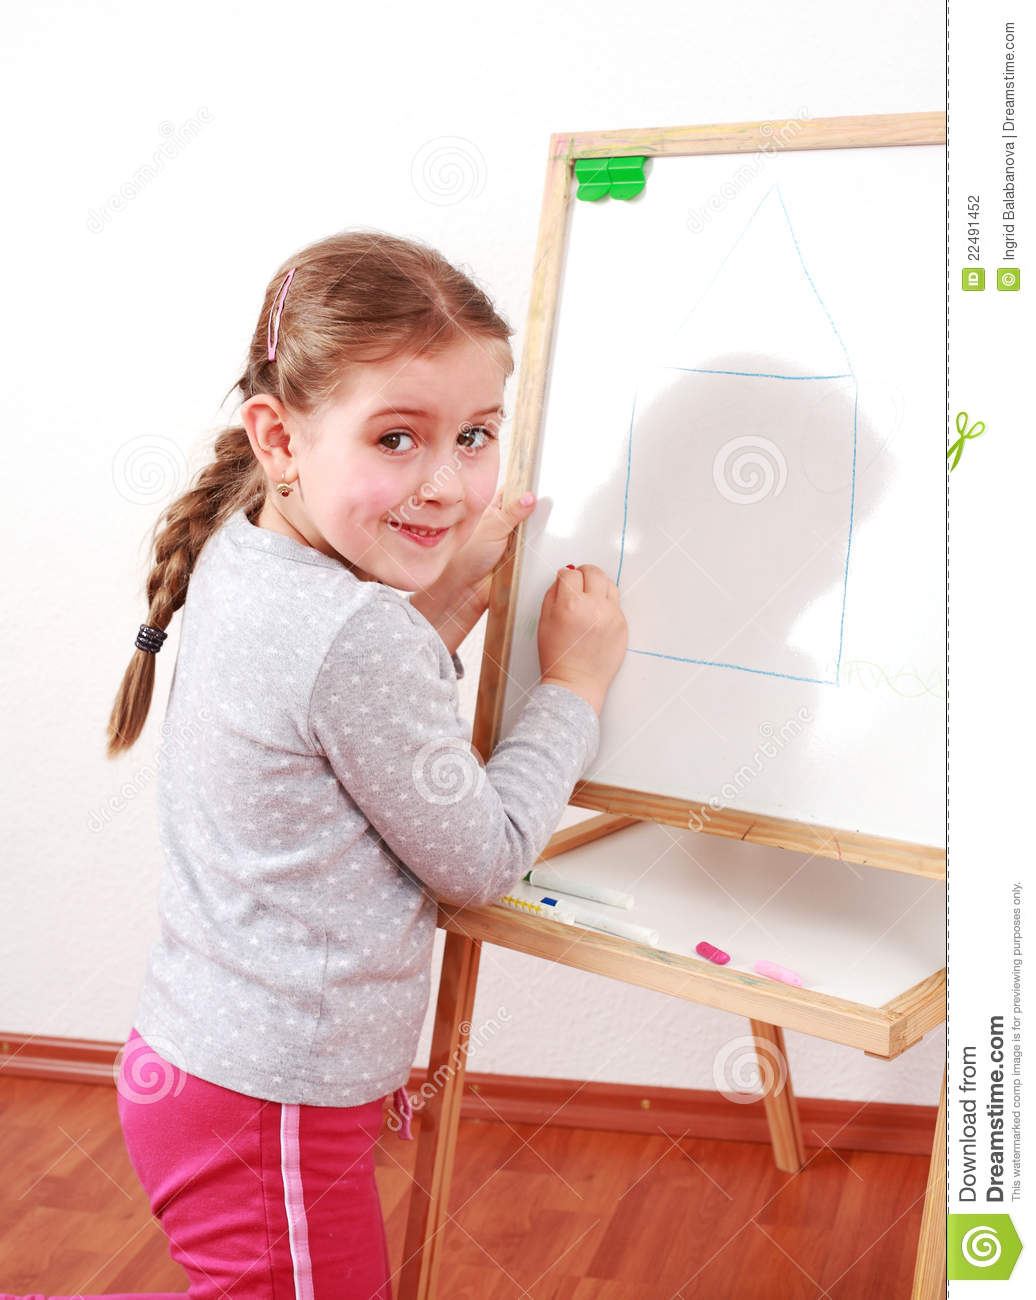 essay photography painting